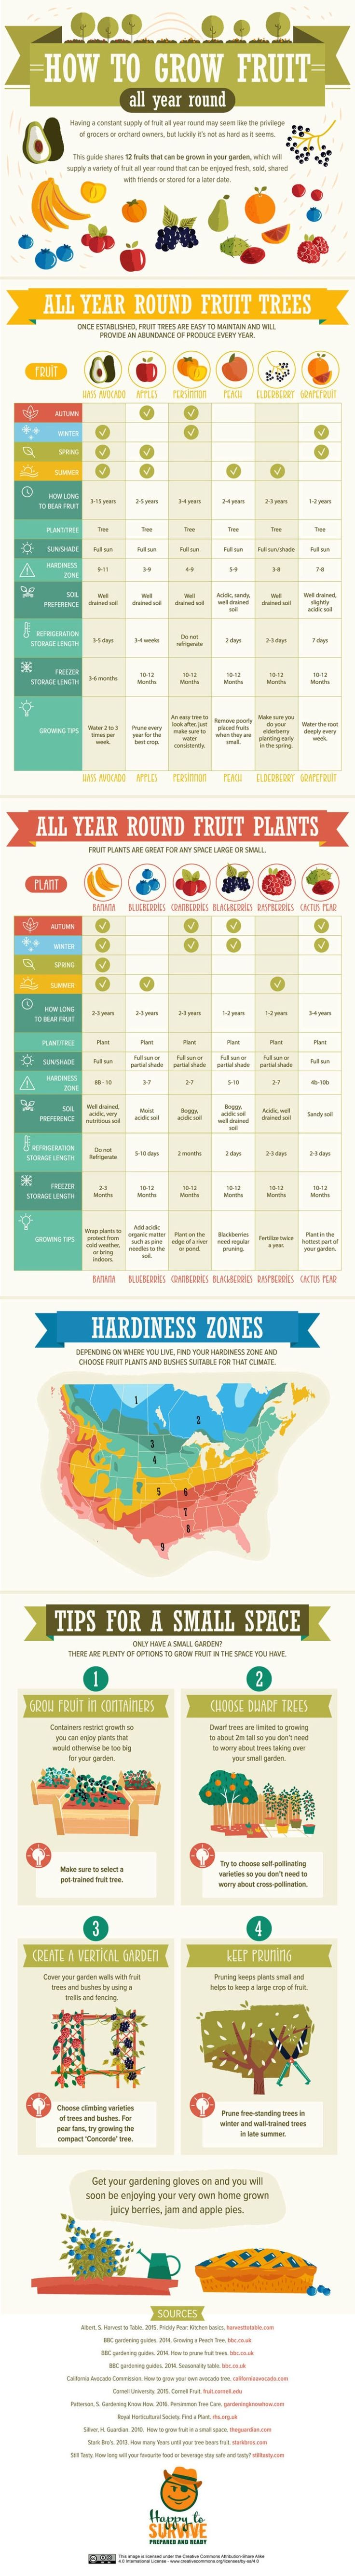 INFOGRAPHIC: Your year-round guide to growing fruit in any space